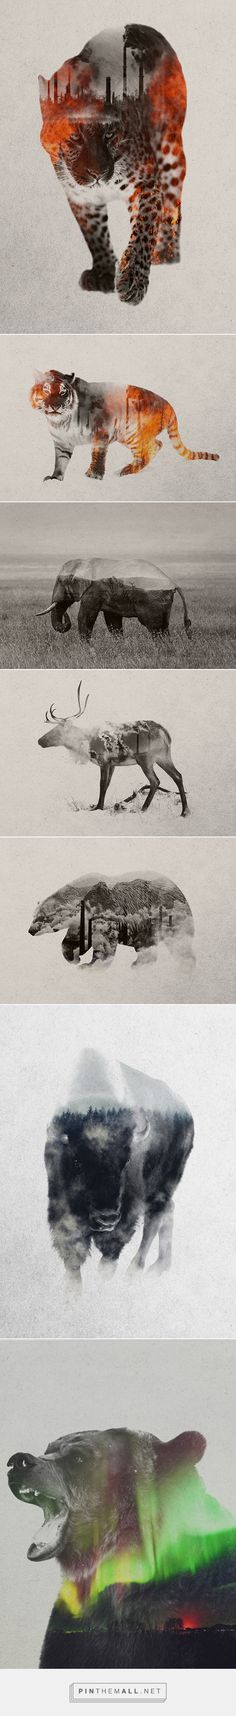 Natural Causes - Andreas Lie - Several in this set contrast the animals against a human environment - gorgeous and startling!